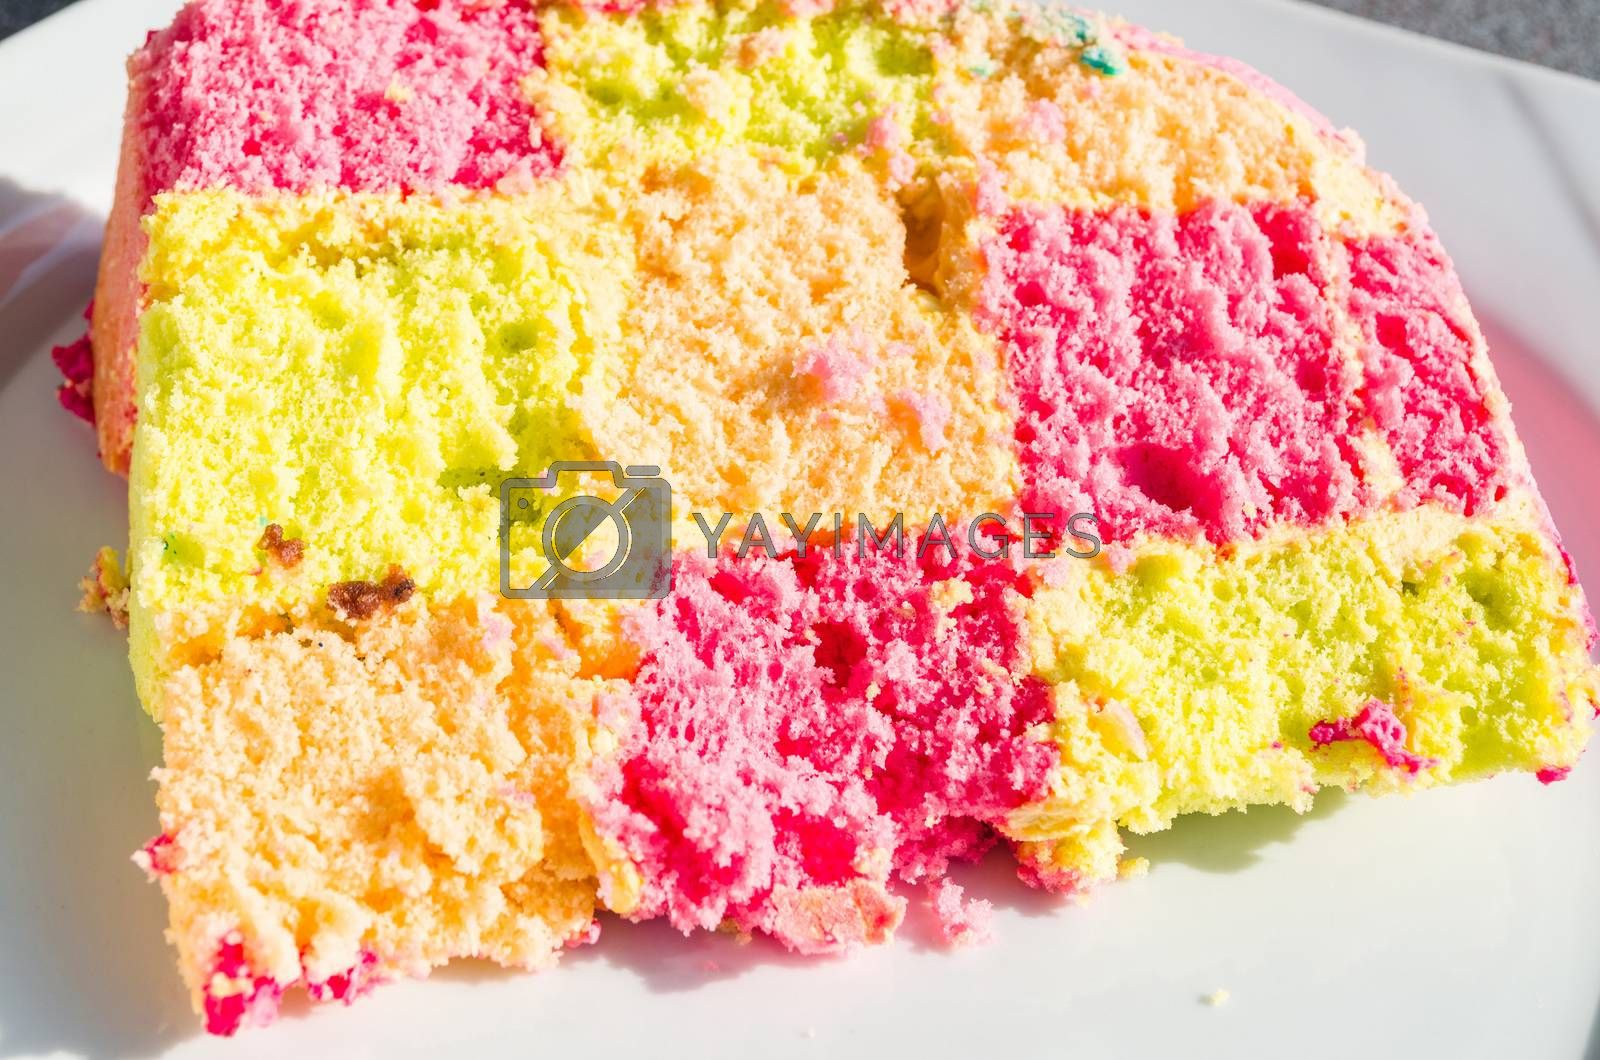 Delicious colorful checkered birthday cake. Cake on white plate.